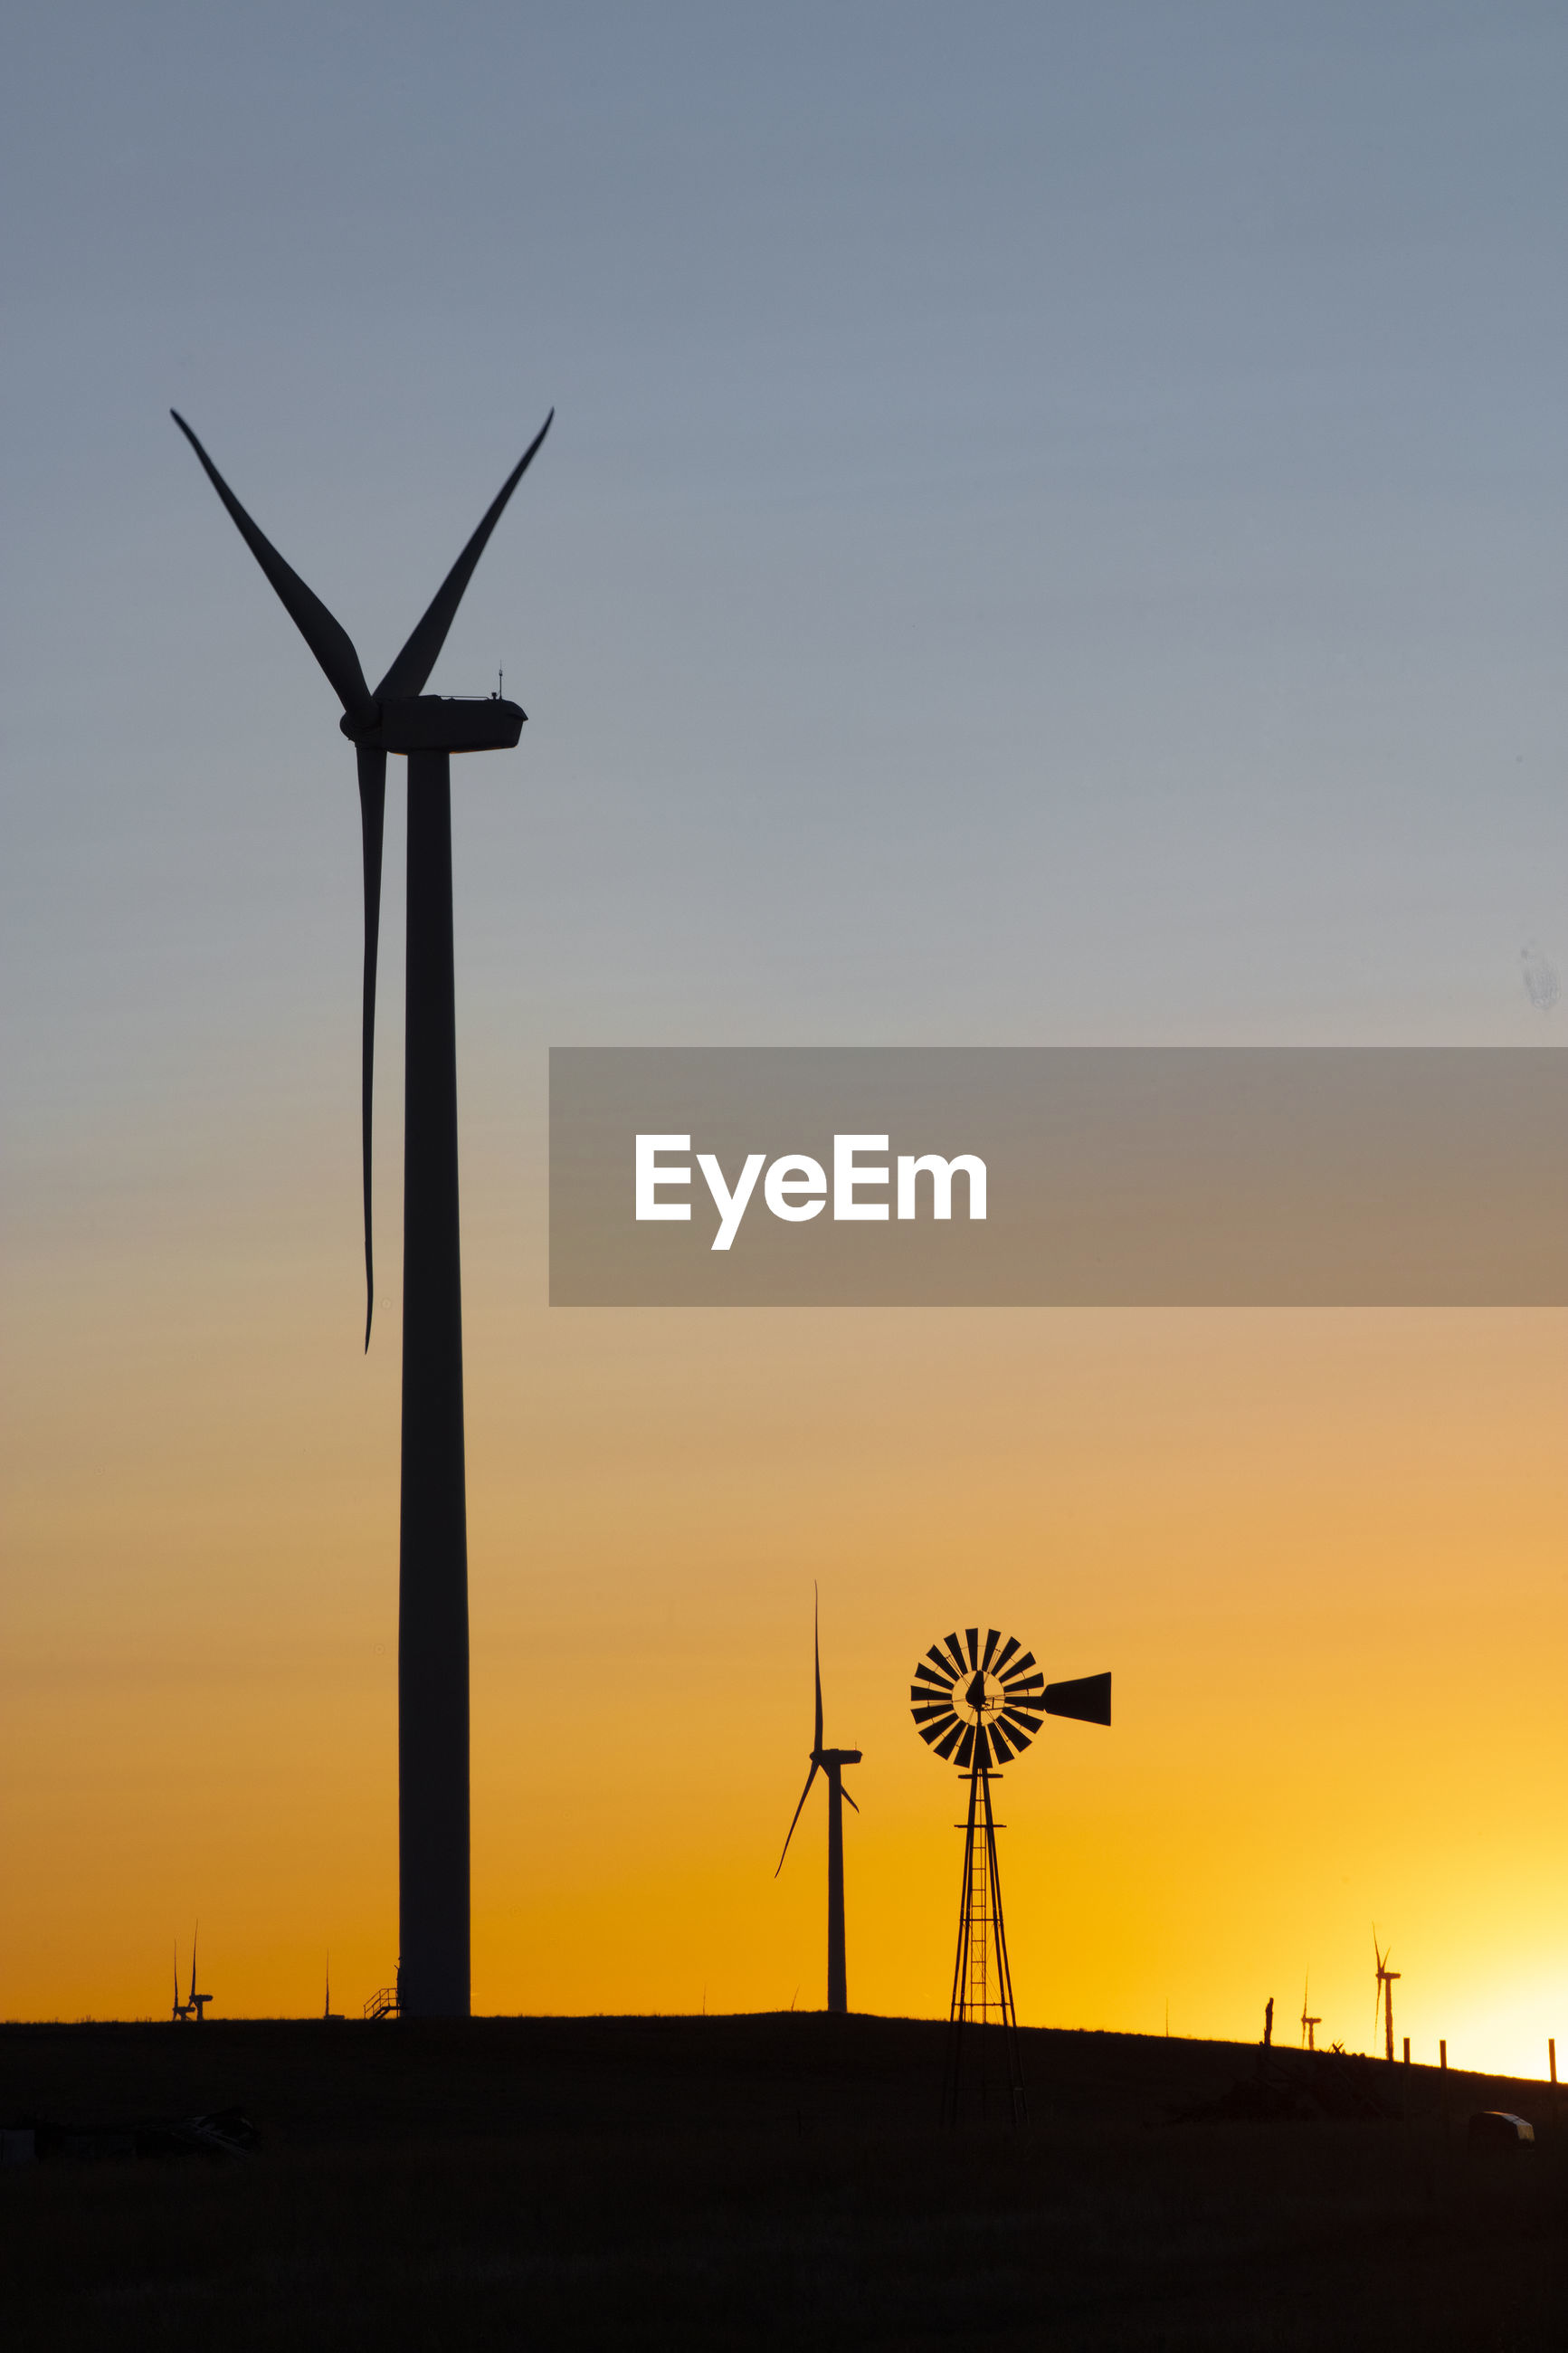 SILHOUETTE WIND TURBINE ON FIELD AGAINST SKY DURING SUNSET